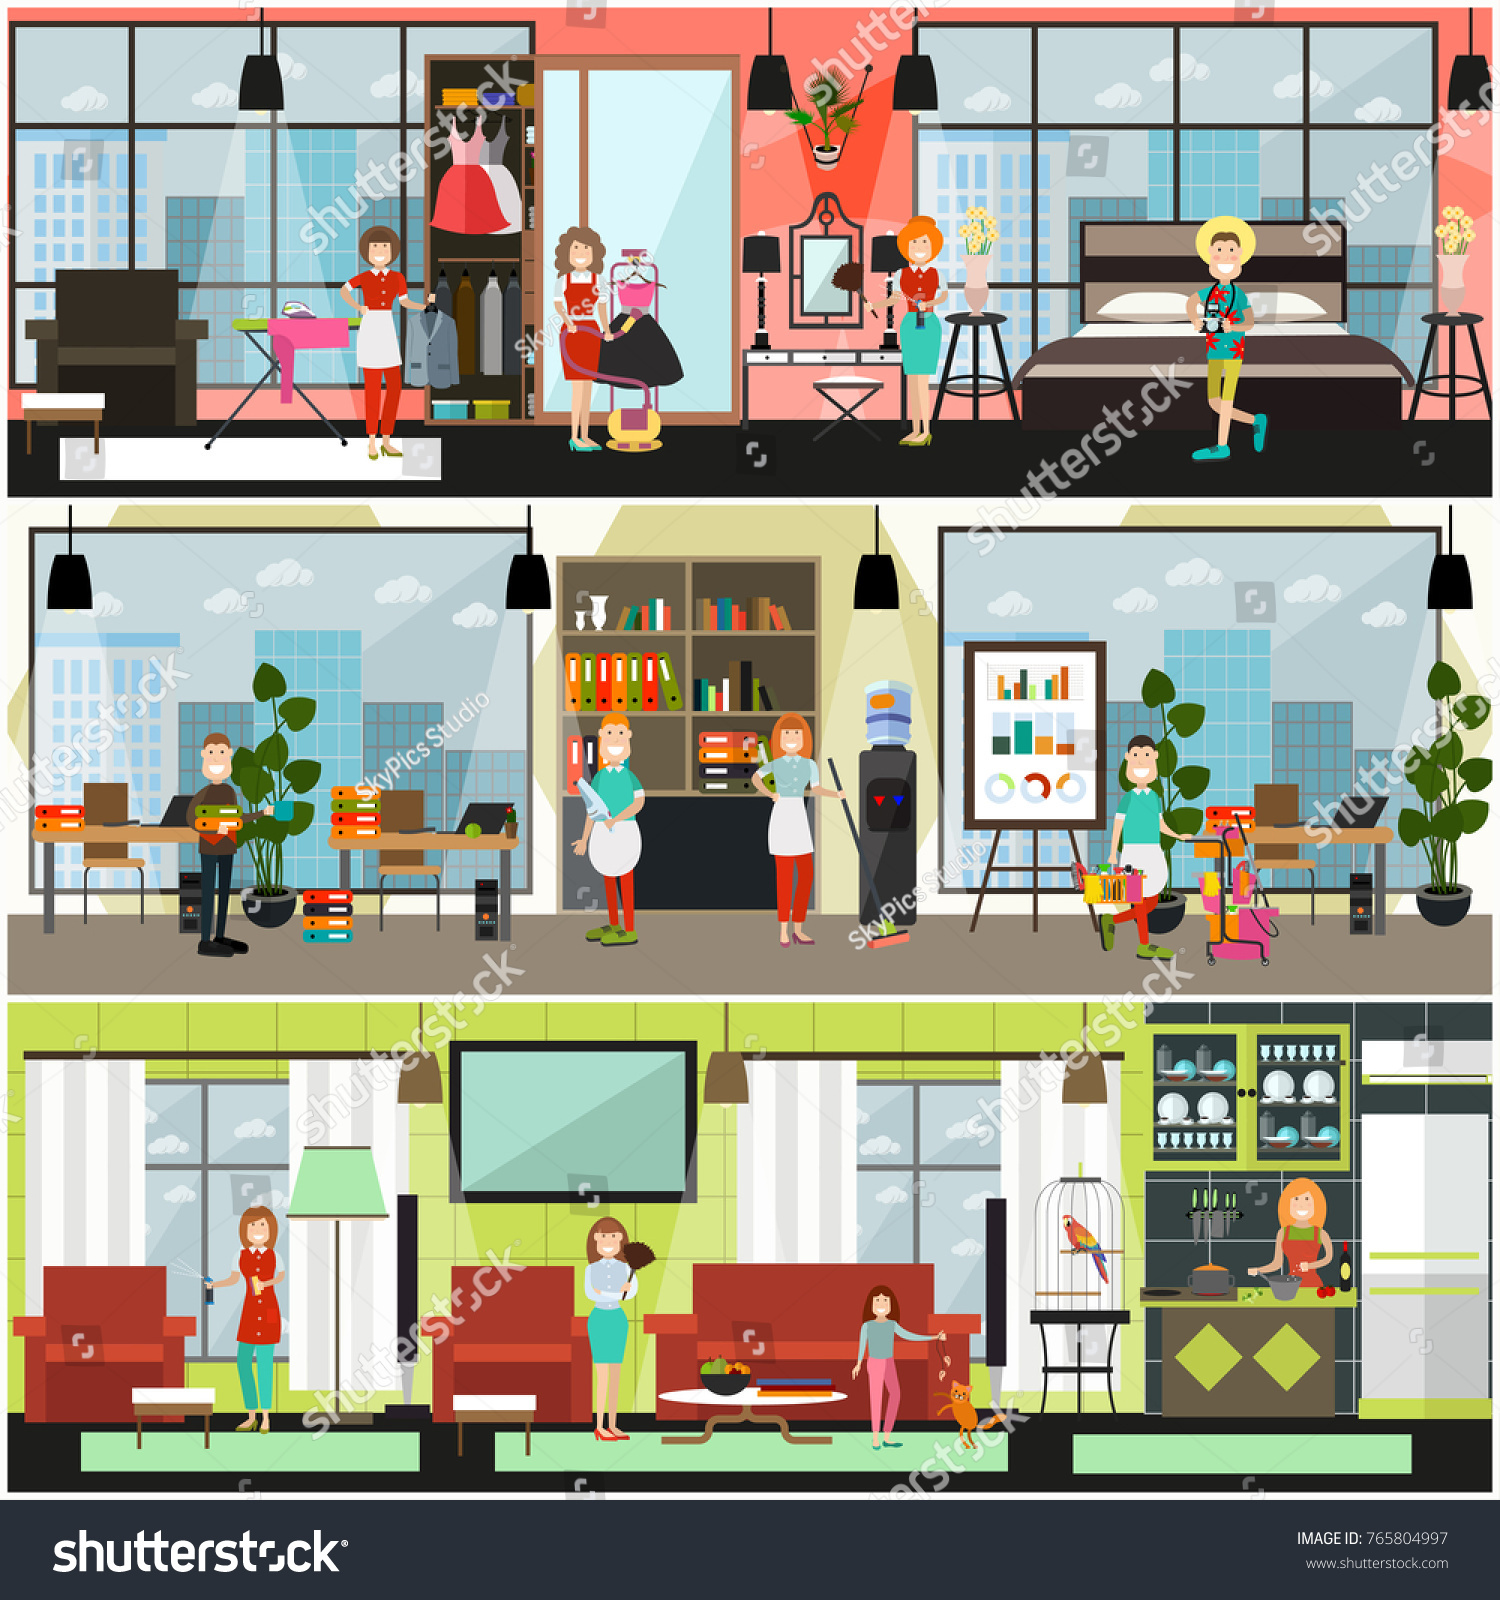 Vector Home And Office Cleaning Services Poster, Banner Set. Flat Style  Design Elements For